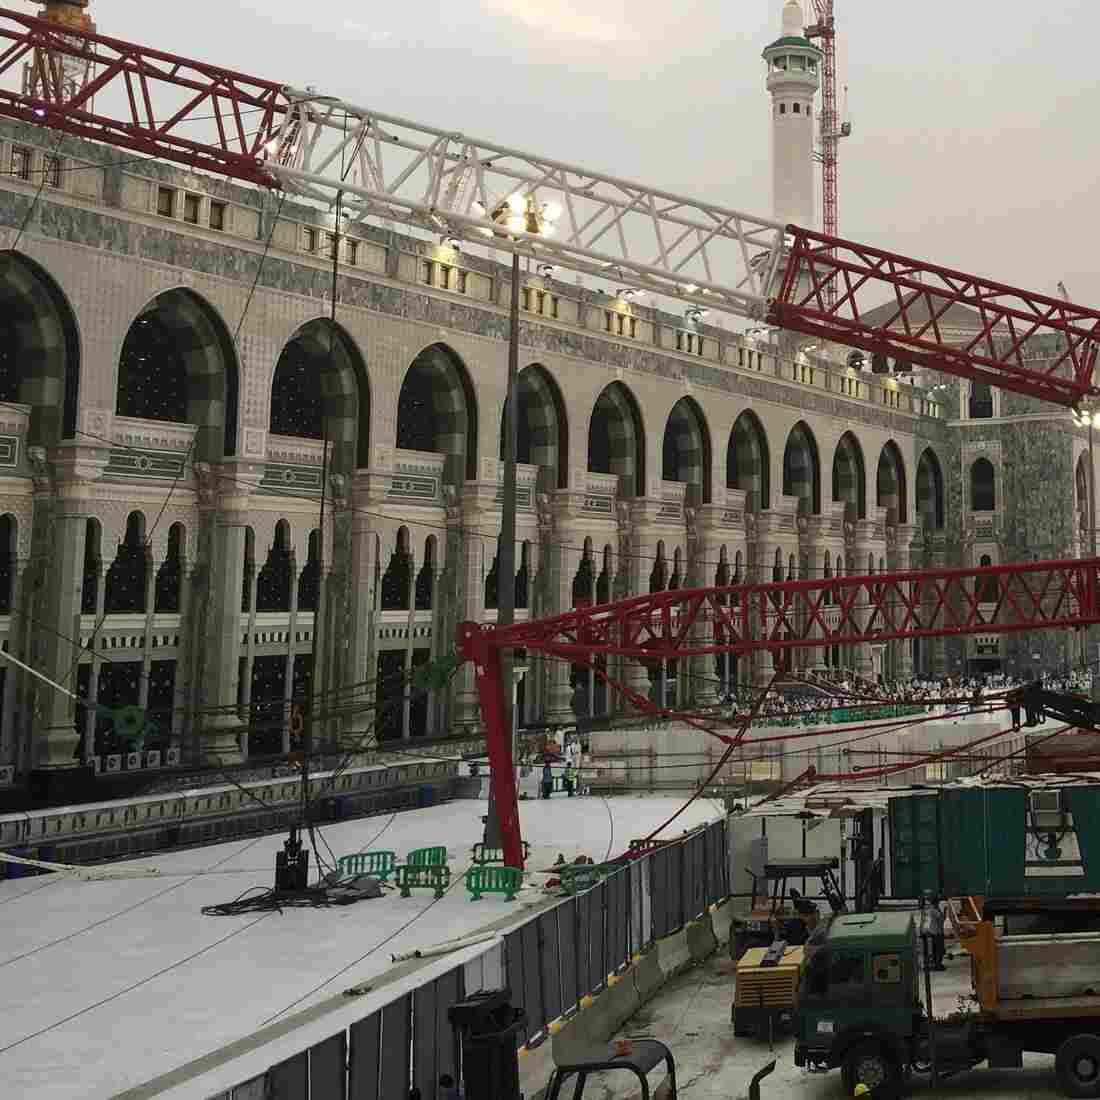 Workers stand next to a collapsed crane that was blamed for 107 deaths at the Grand Mosque in Saudi Arabia's holy Muslim city of Mecca last week.